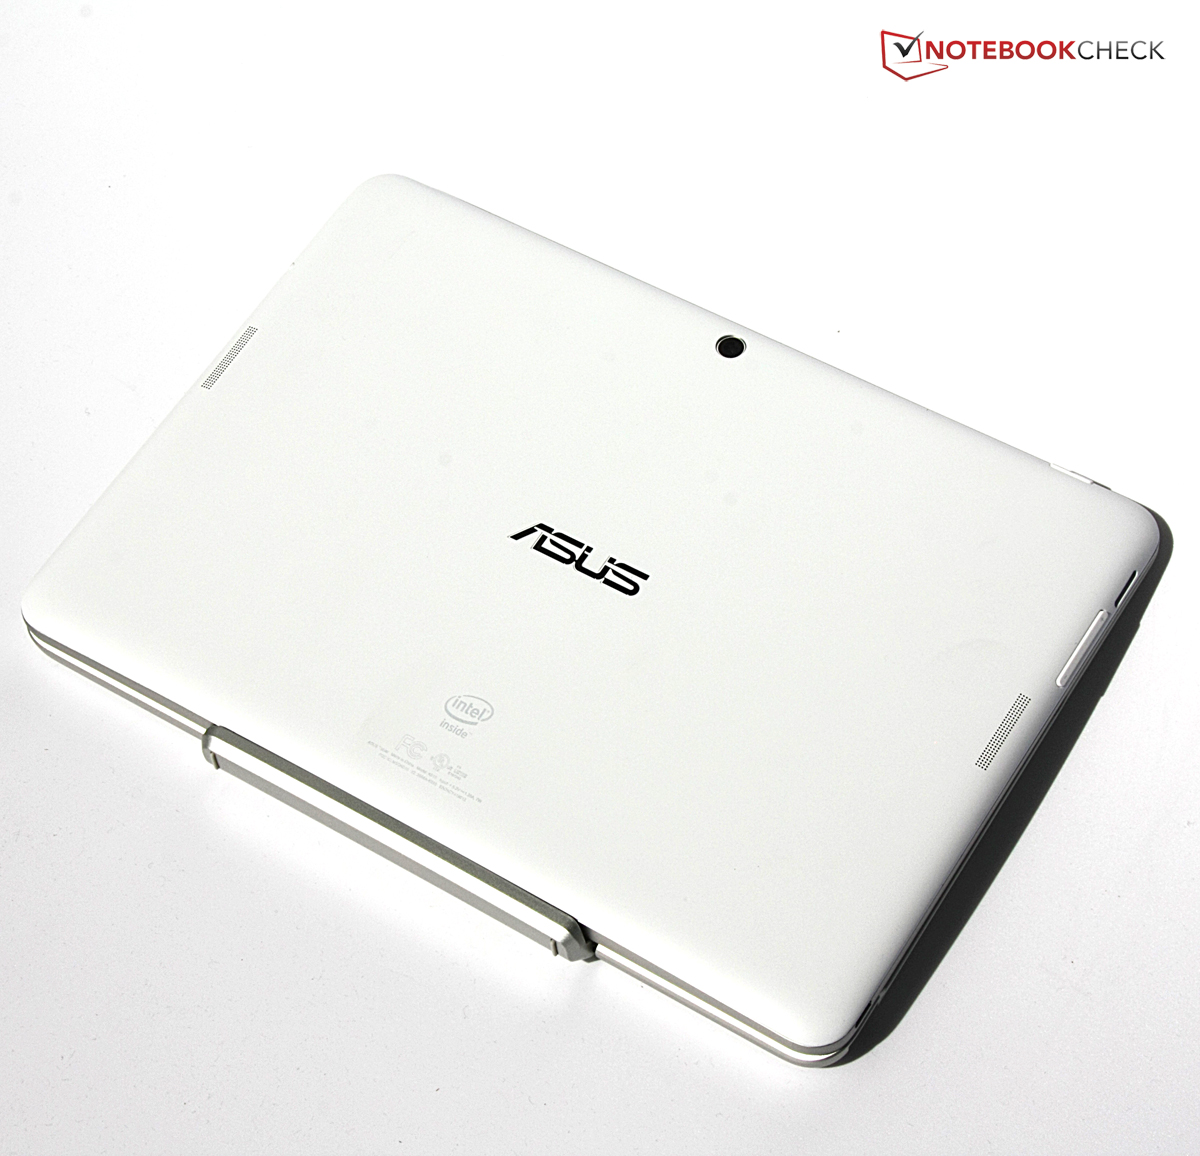 Breve Análise do Tablet Asus Transformer Pad TF103C-1B072A